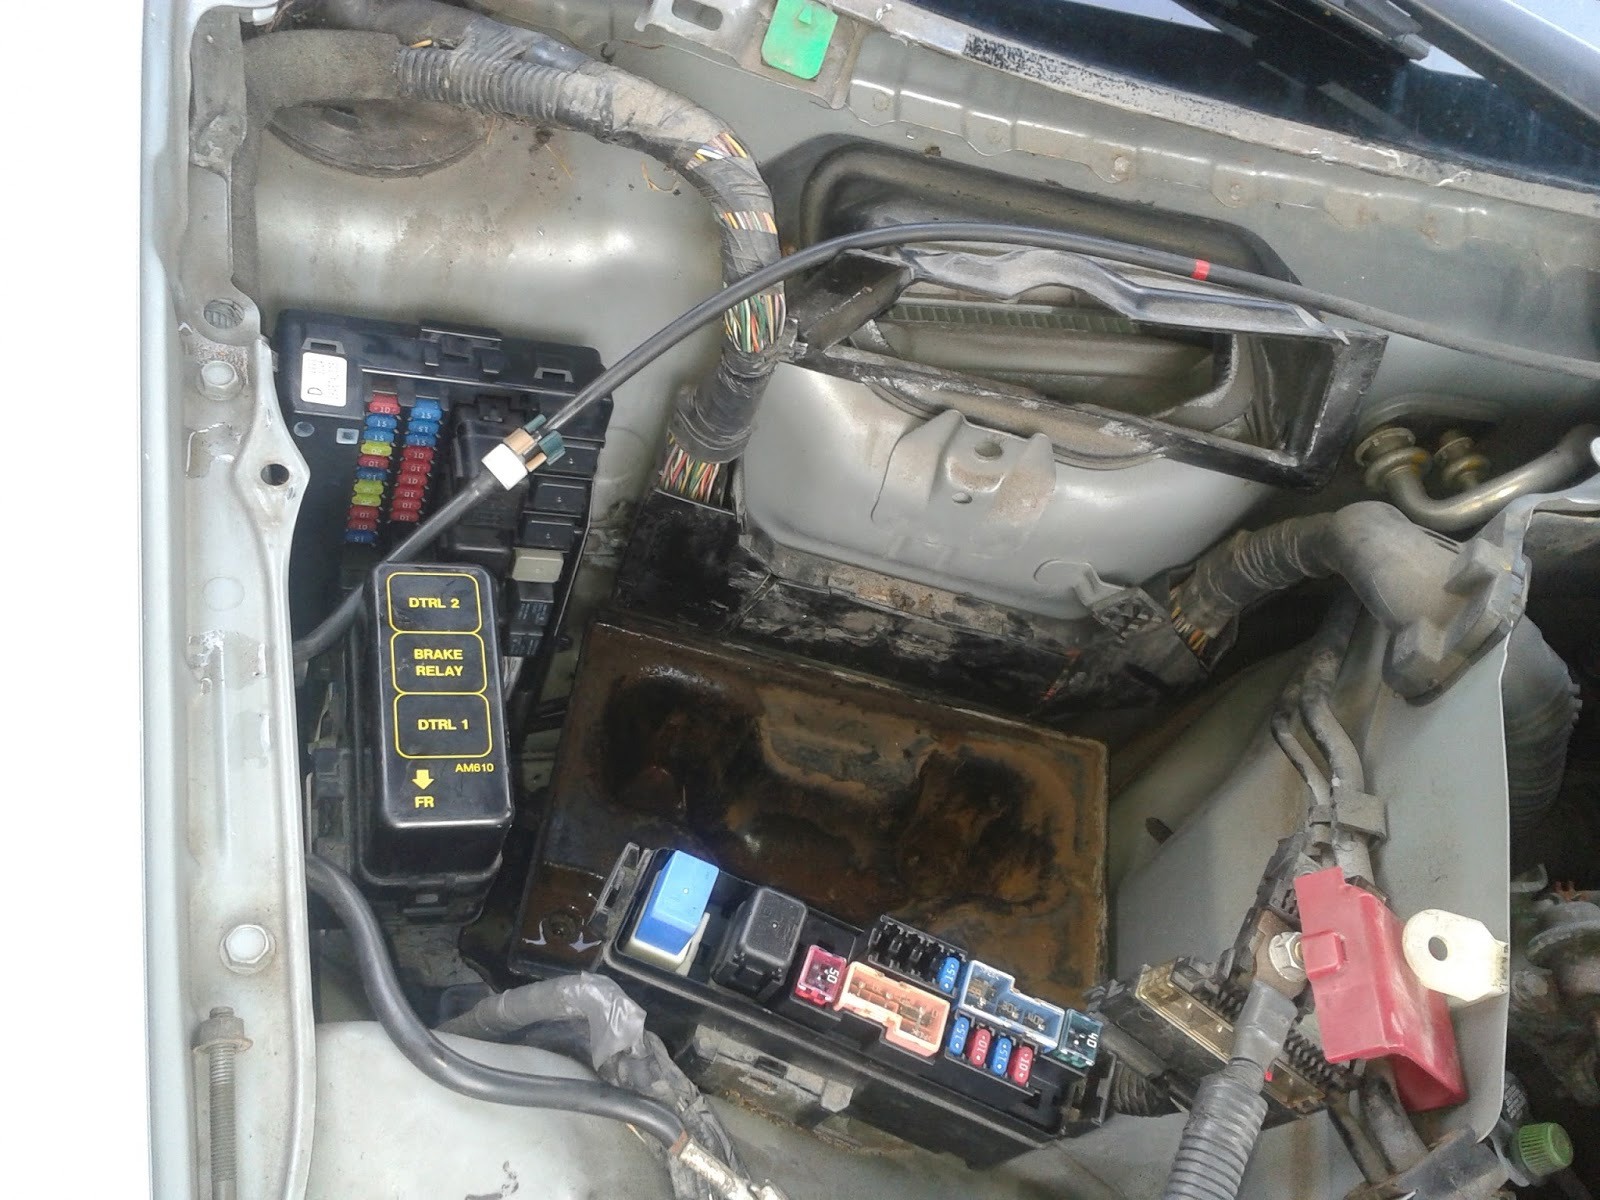 2015 05 27%2B18.55.50 zf inifiniti g35 2003 wet ipdm issue, how to fix it 2005 infiniti g35 fuse box location at n-0.co